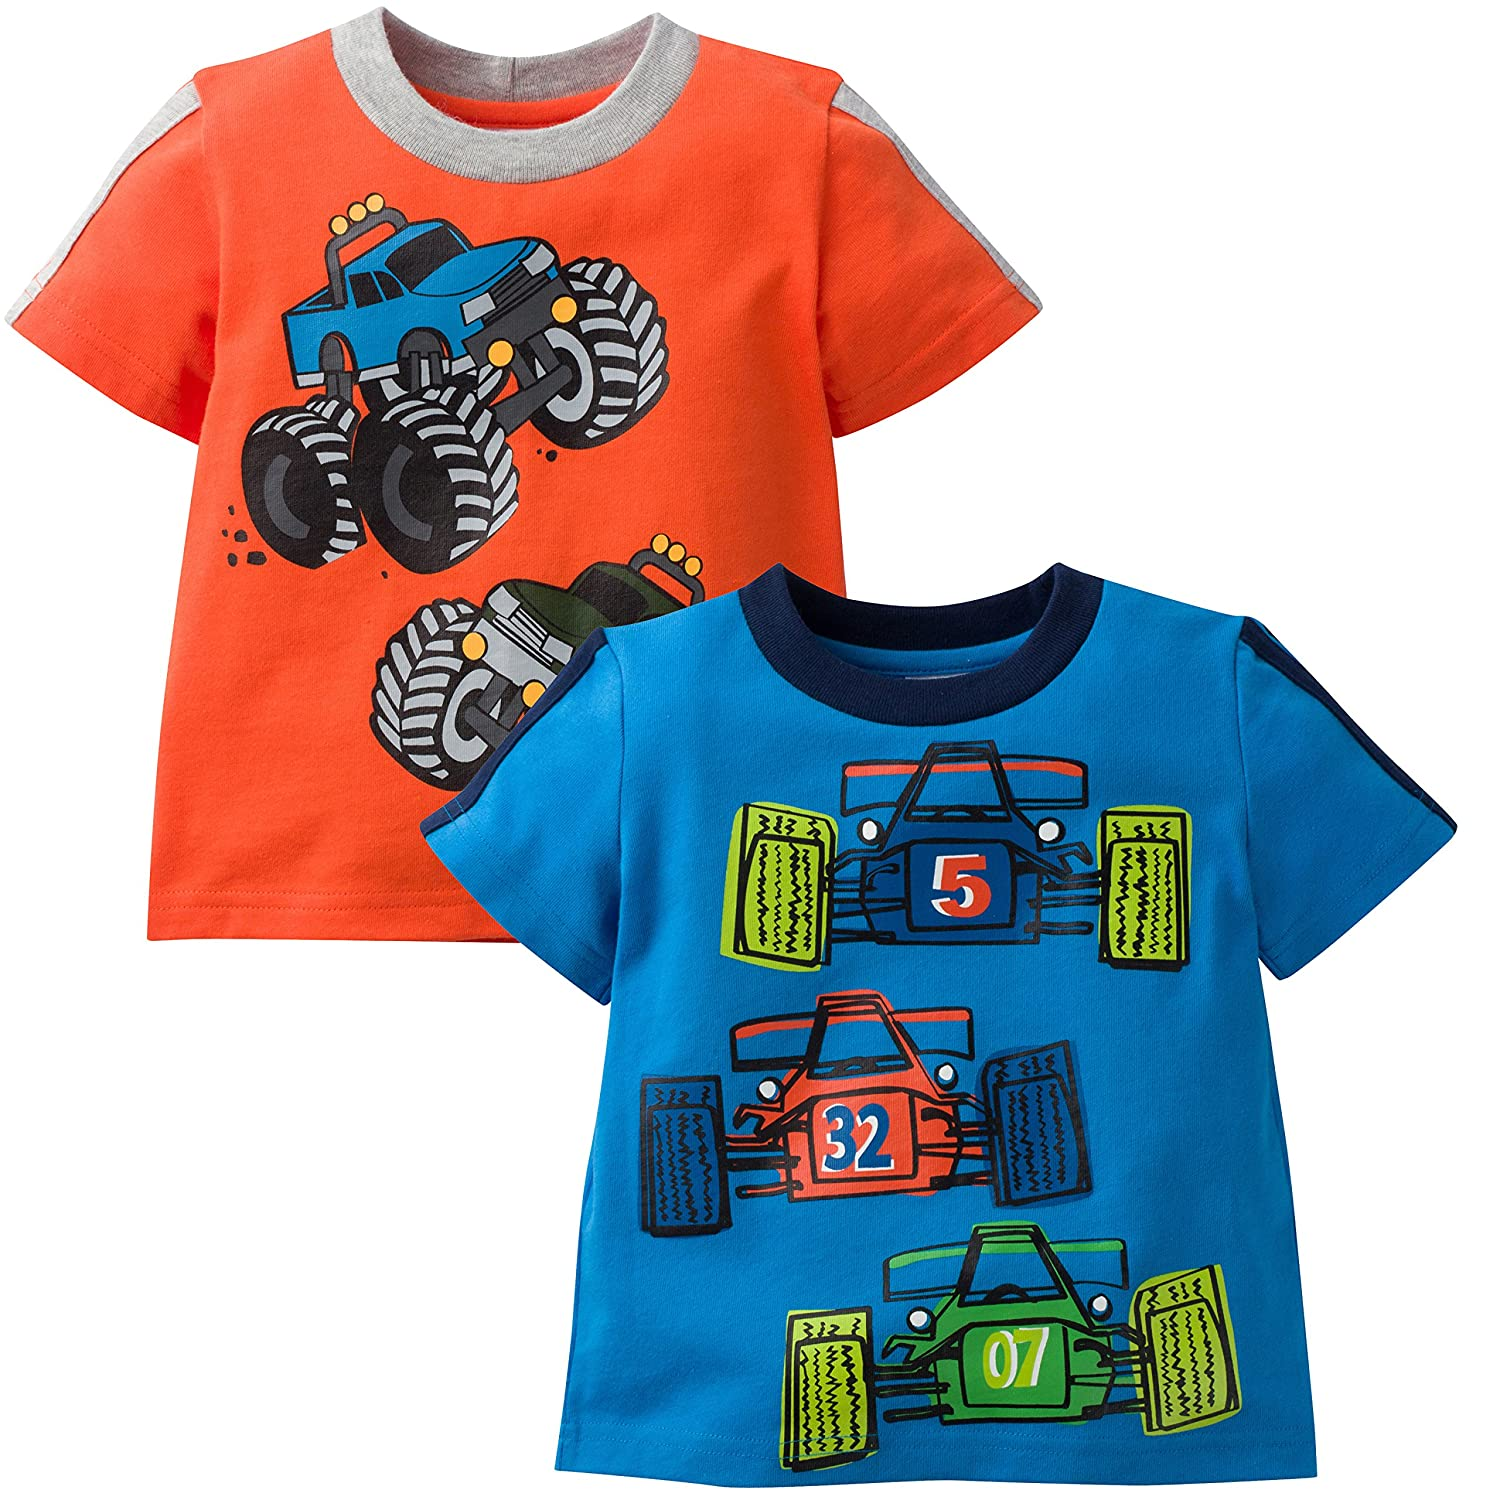 Gerber Graduates Baby Boys' 2 Pack Short Sleeve Top 96315216A